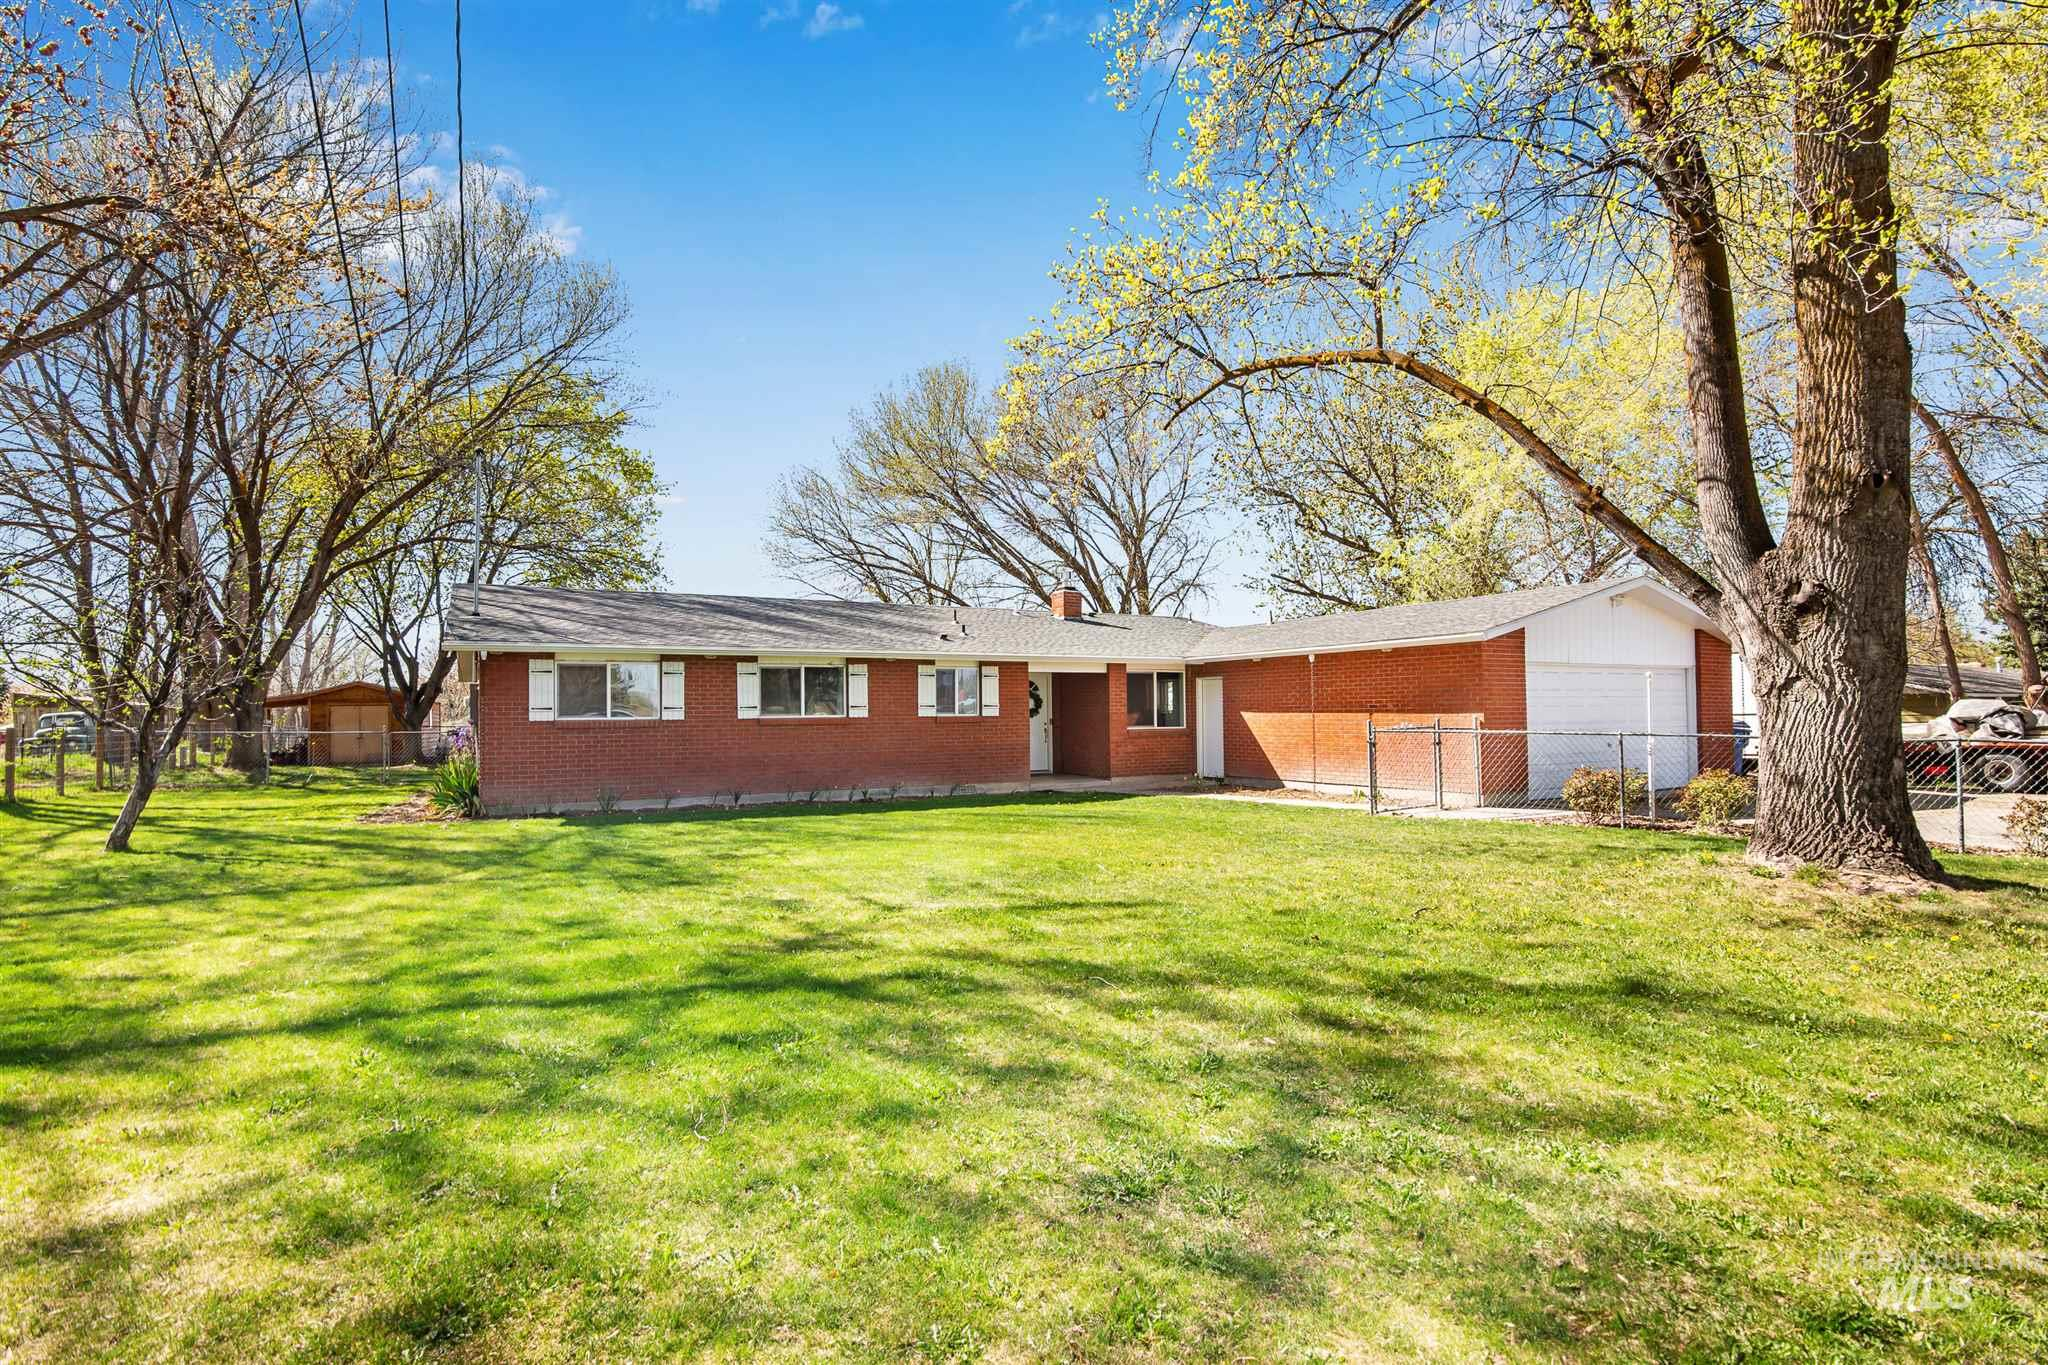 4465 S Five Mile Rd Property Photo - Boise, ID real estate listing